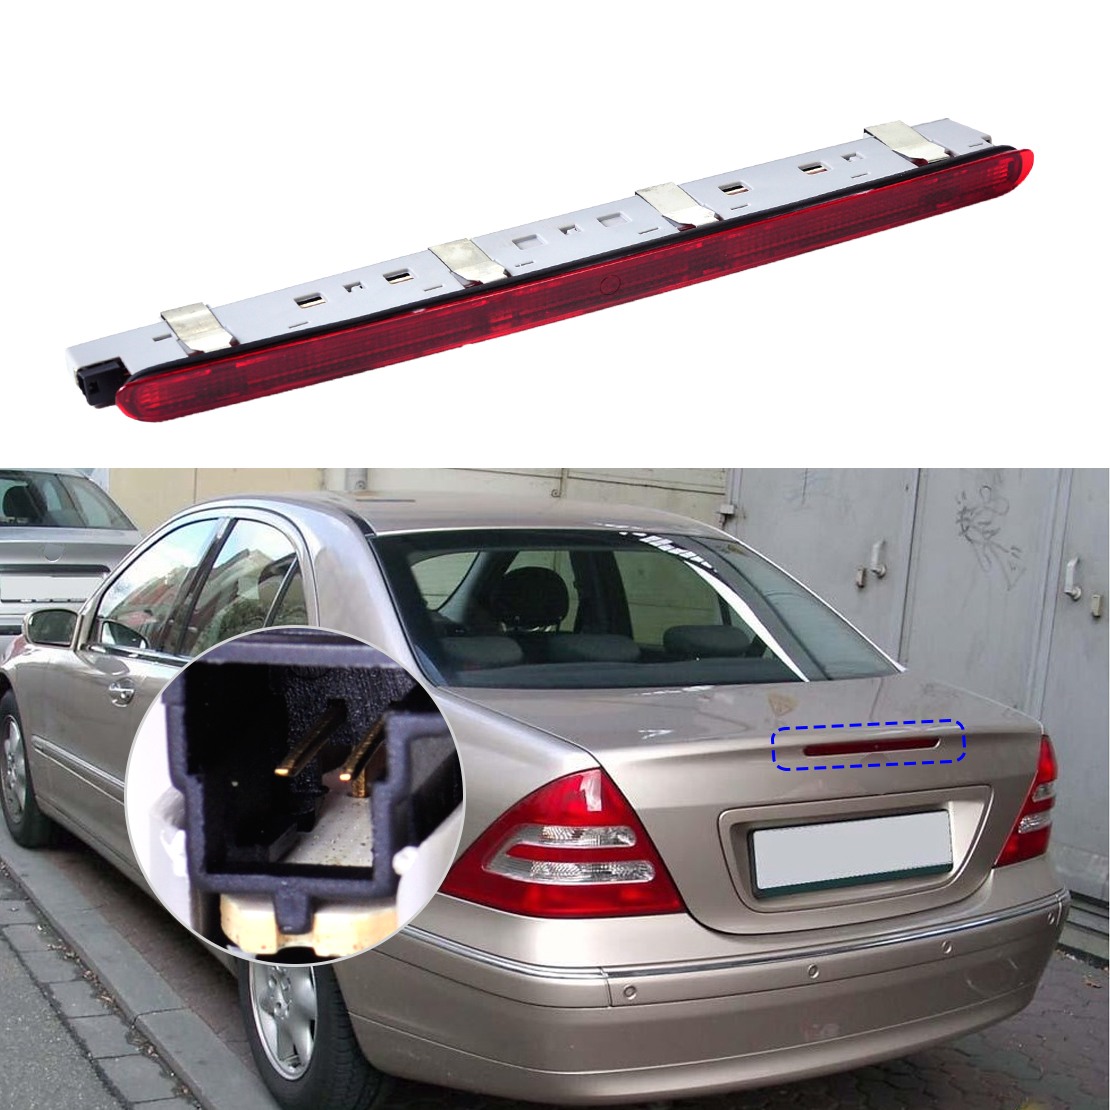 medium resolution of beler rear tail stop lamp third brake light for mercedes benz w203 c230 c240 c280 c350 2000 2001 2002 2003 2004 2005 2006 2007